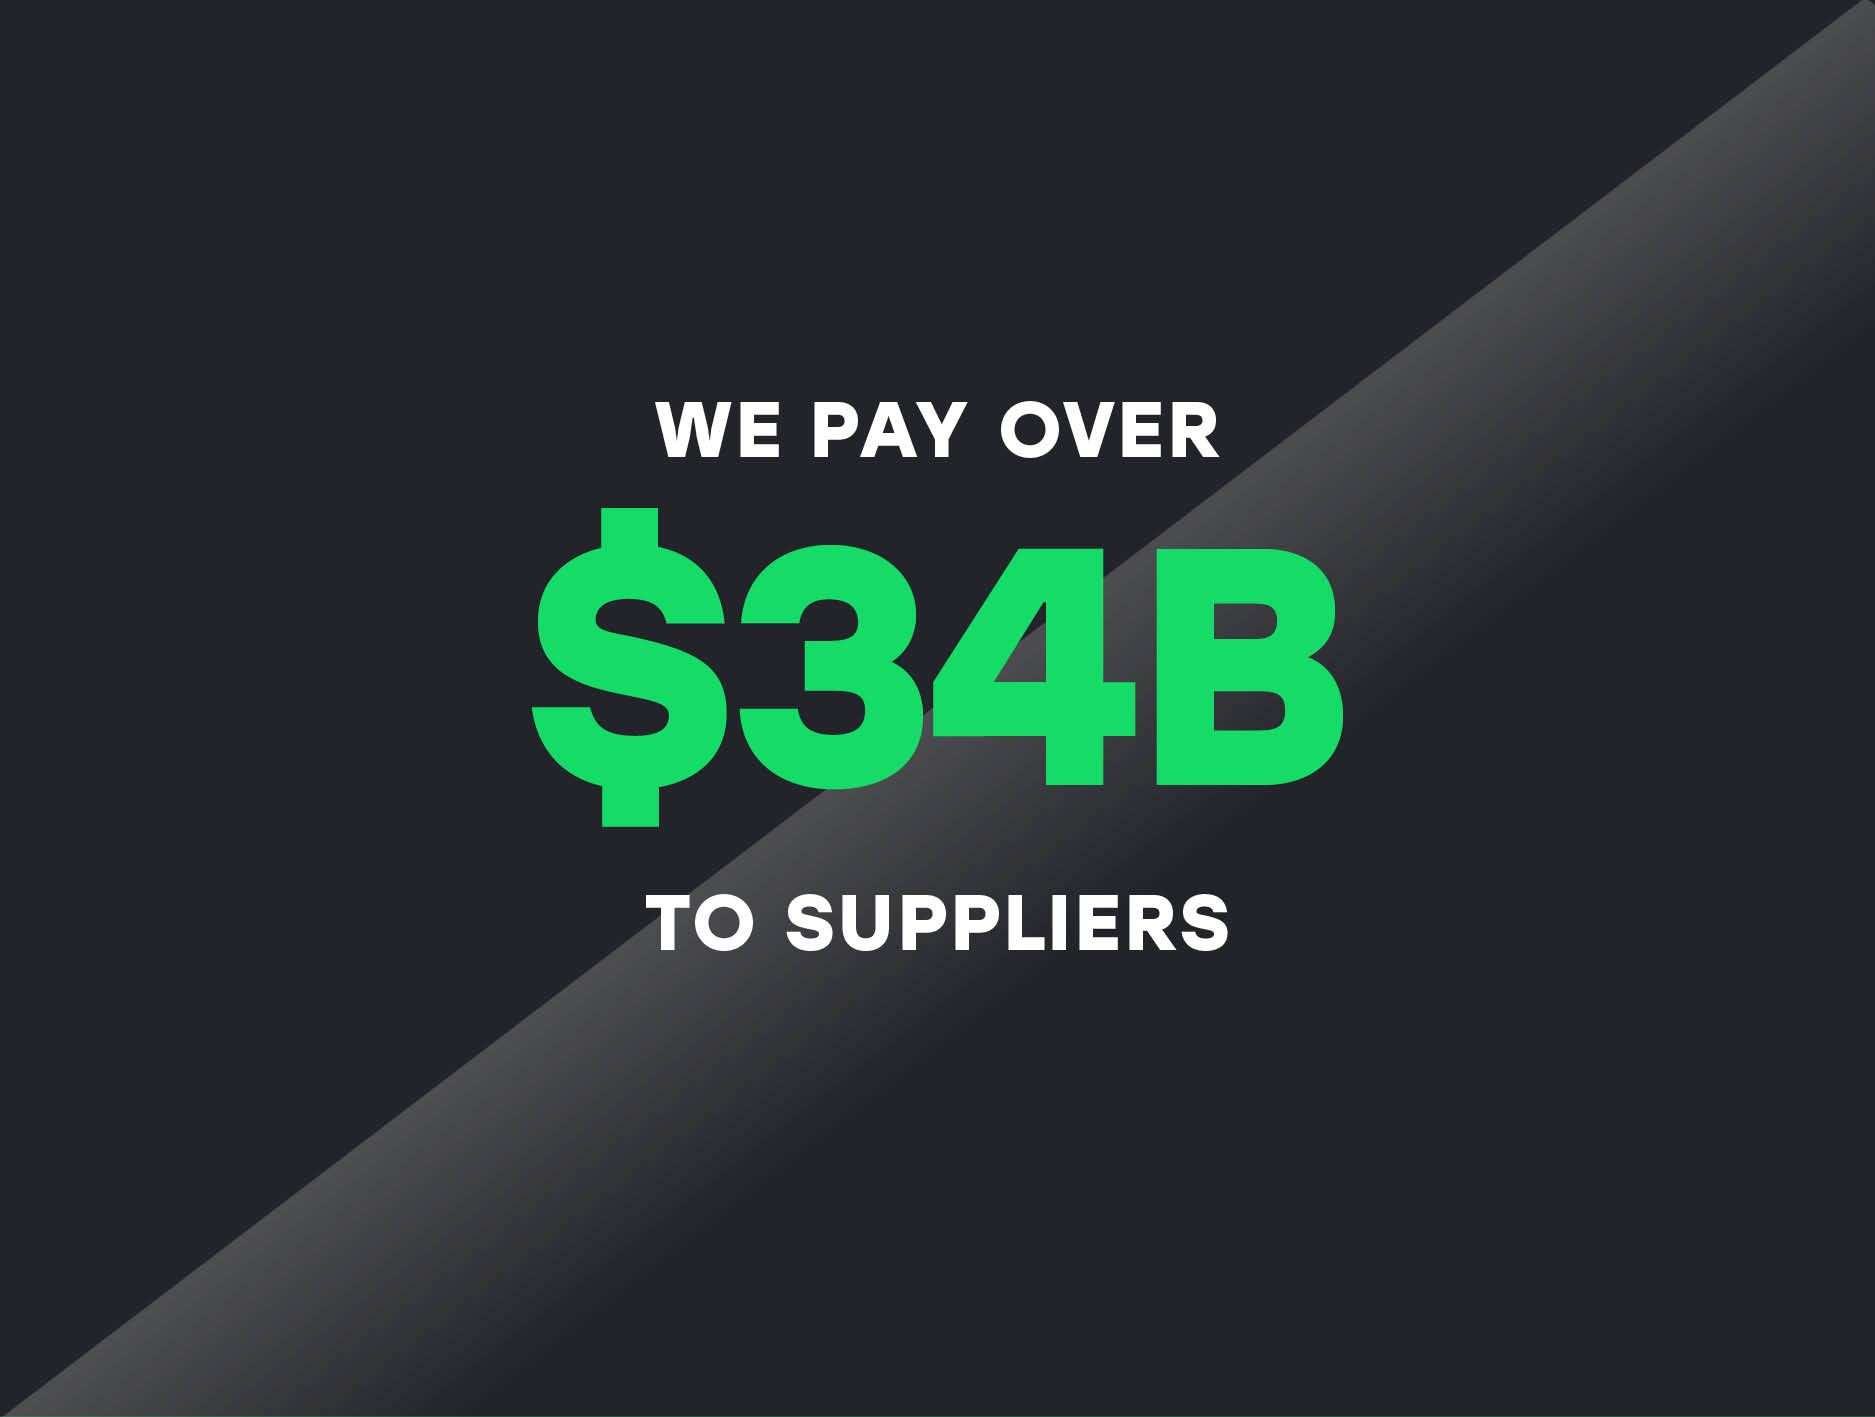 We pay over 34 billion dollars to suppliers